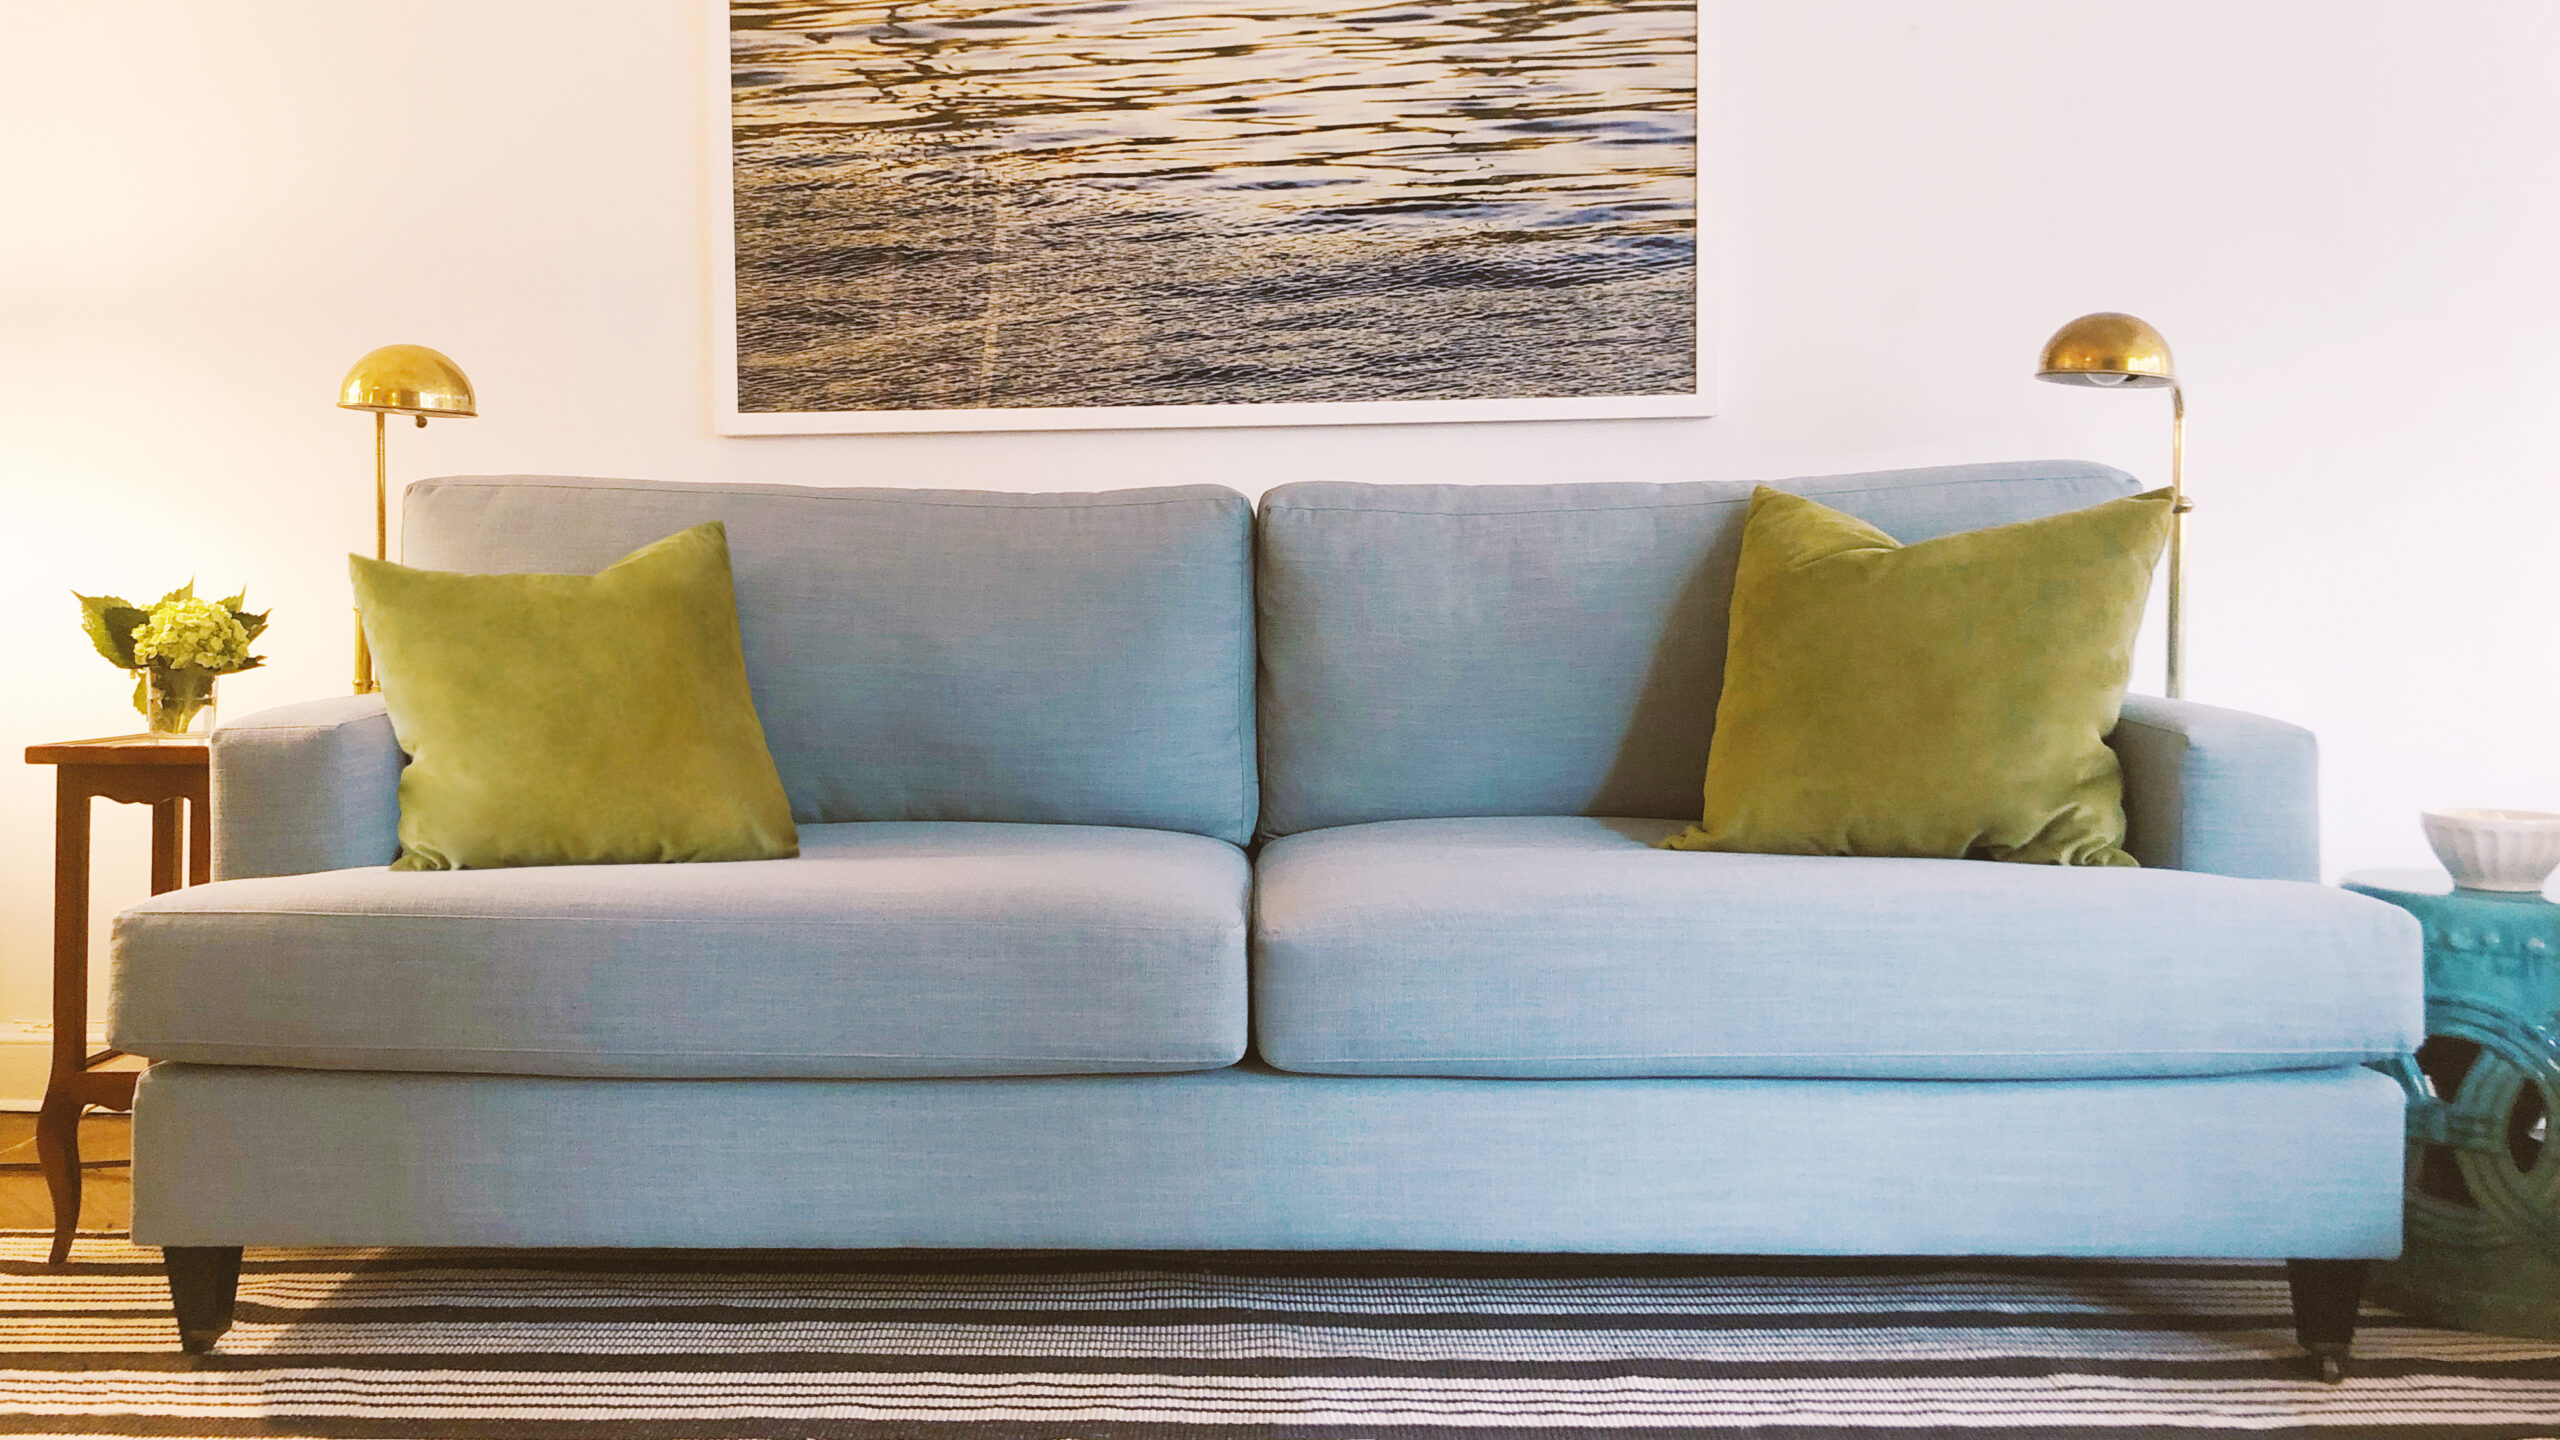 What type of couch is best for a small living room?